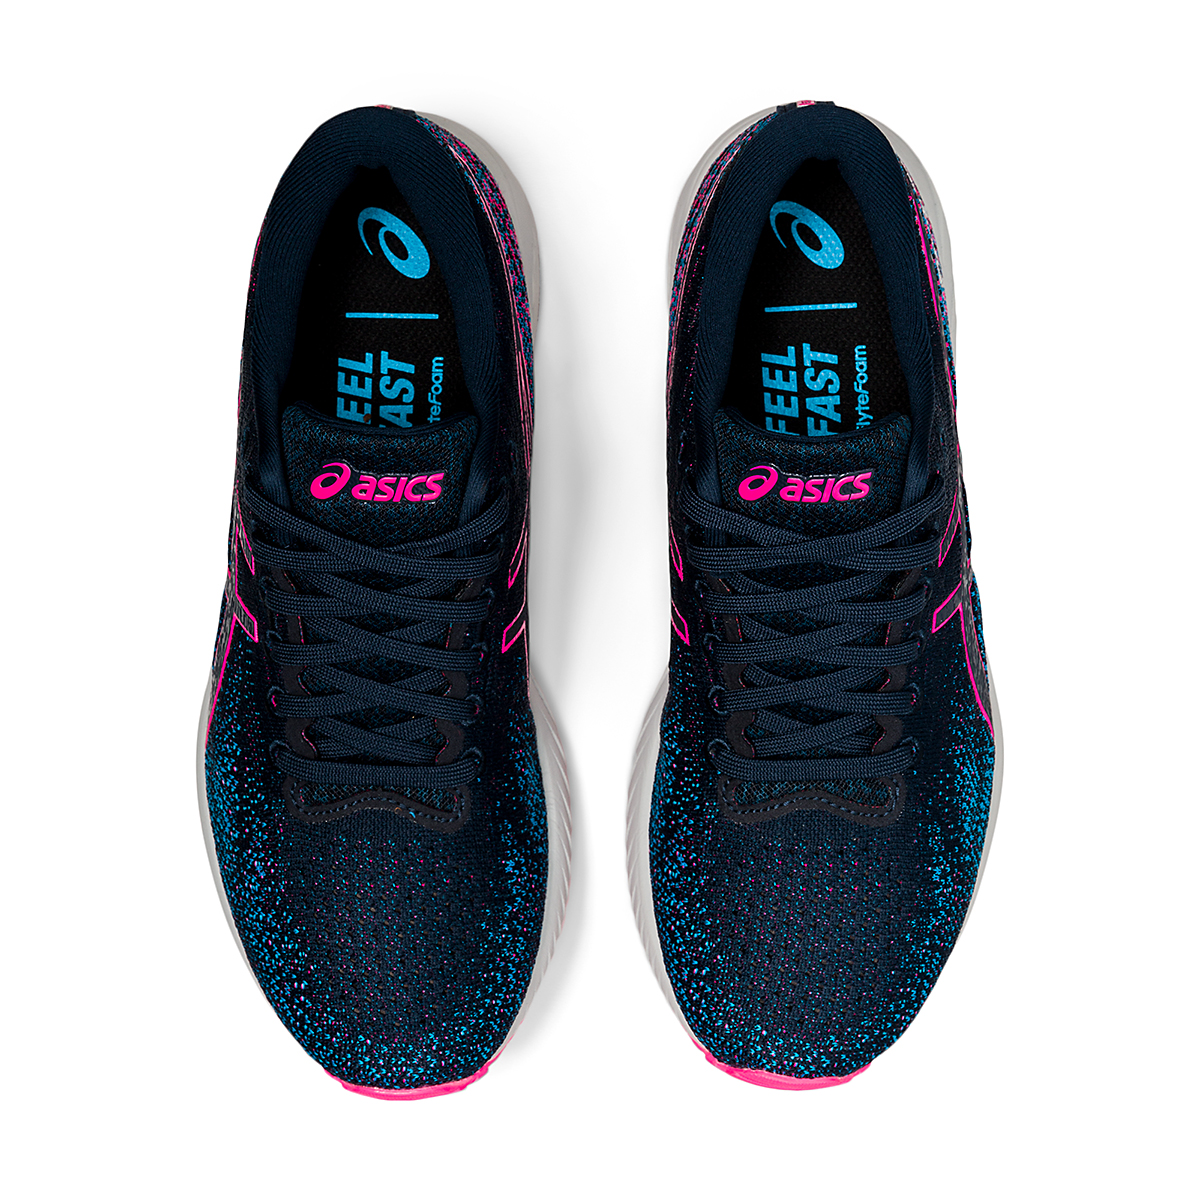 Women's Asics Gel-DS Trainer 26 Running Shoe - Color: French Blue/Hot Pink - Size: 5 - Width: Regular, French Blue/Hot Pink, large, image 6